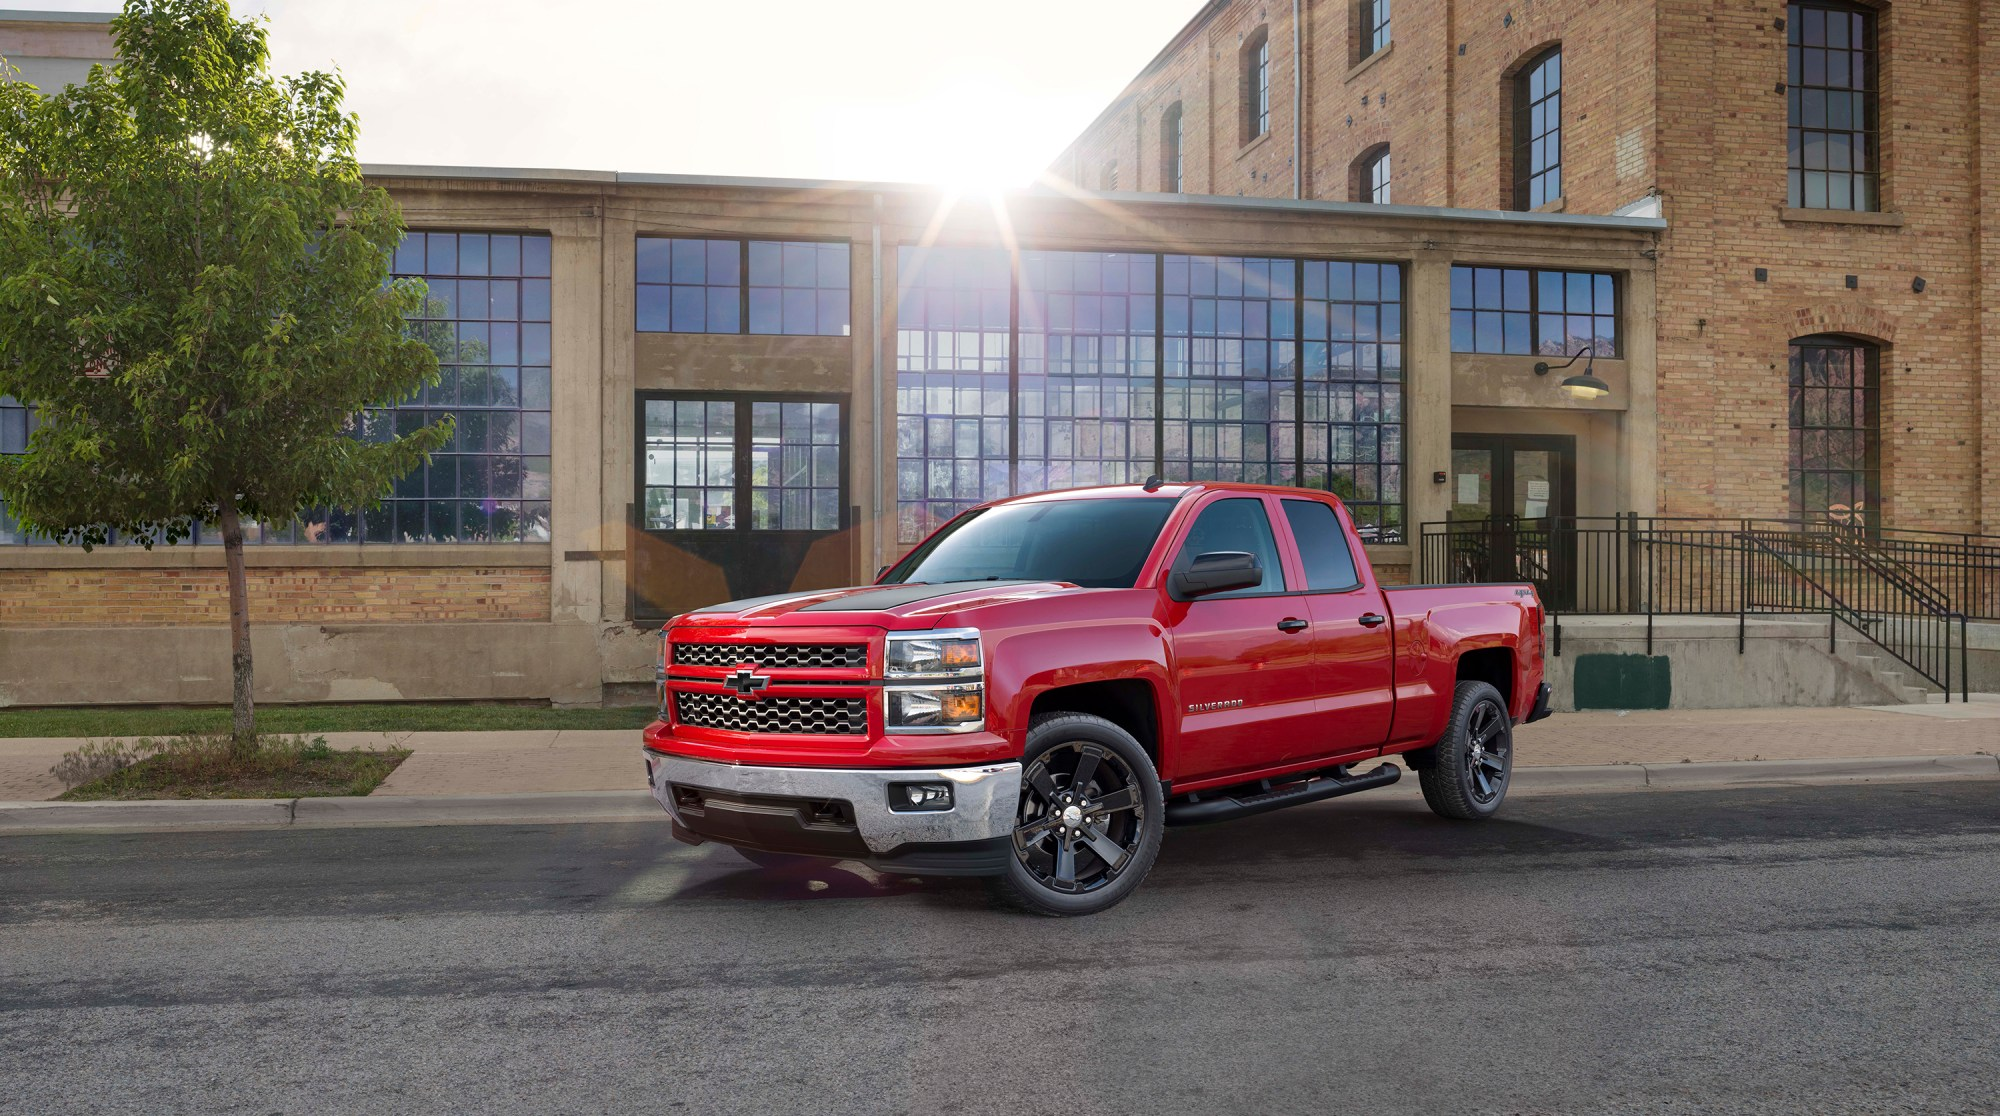 hight resolution of 2014 chevrolet silverado rally edition